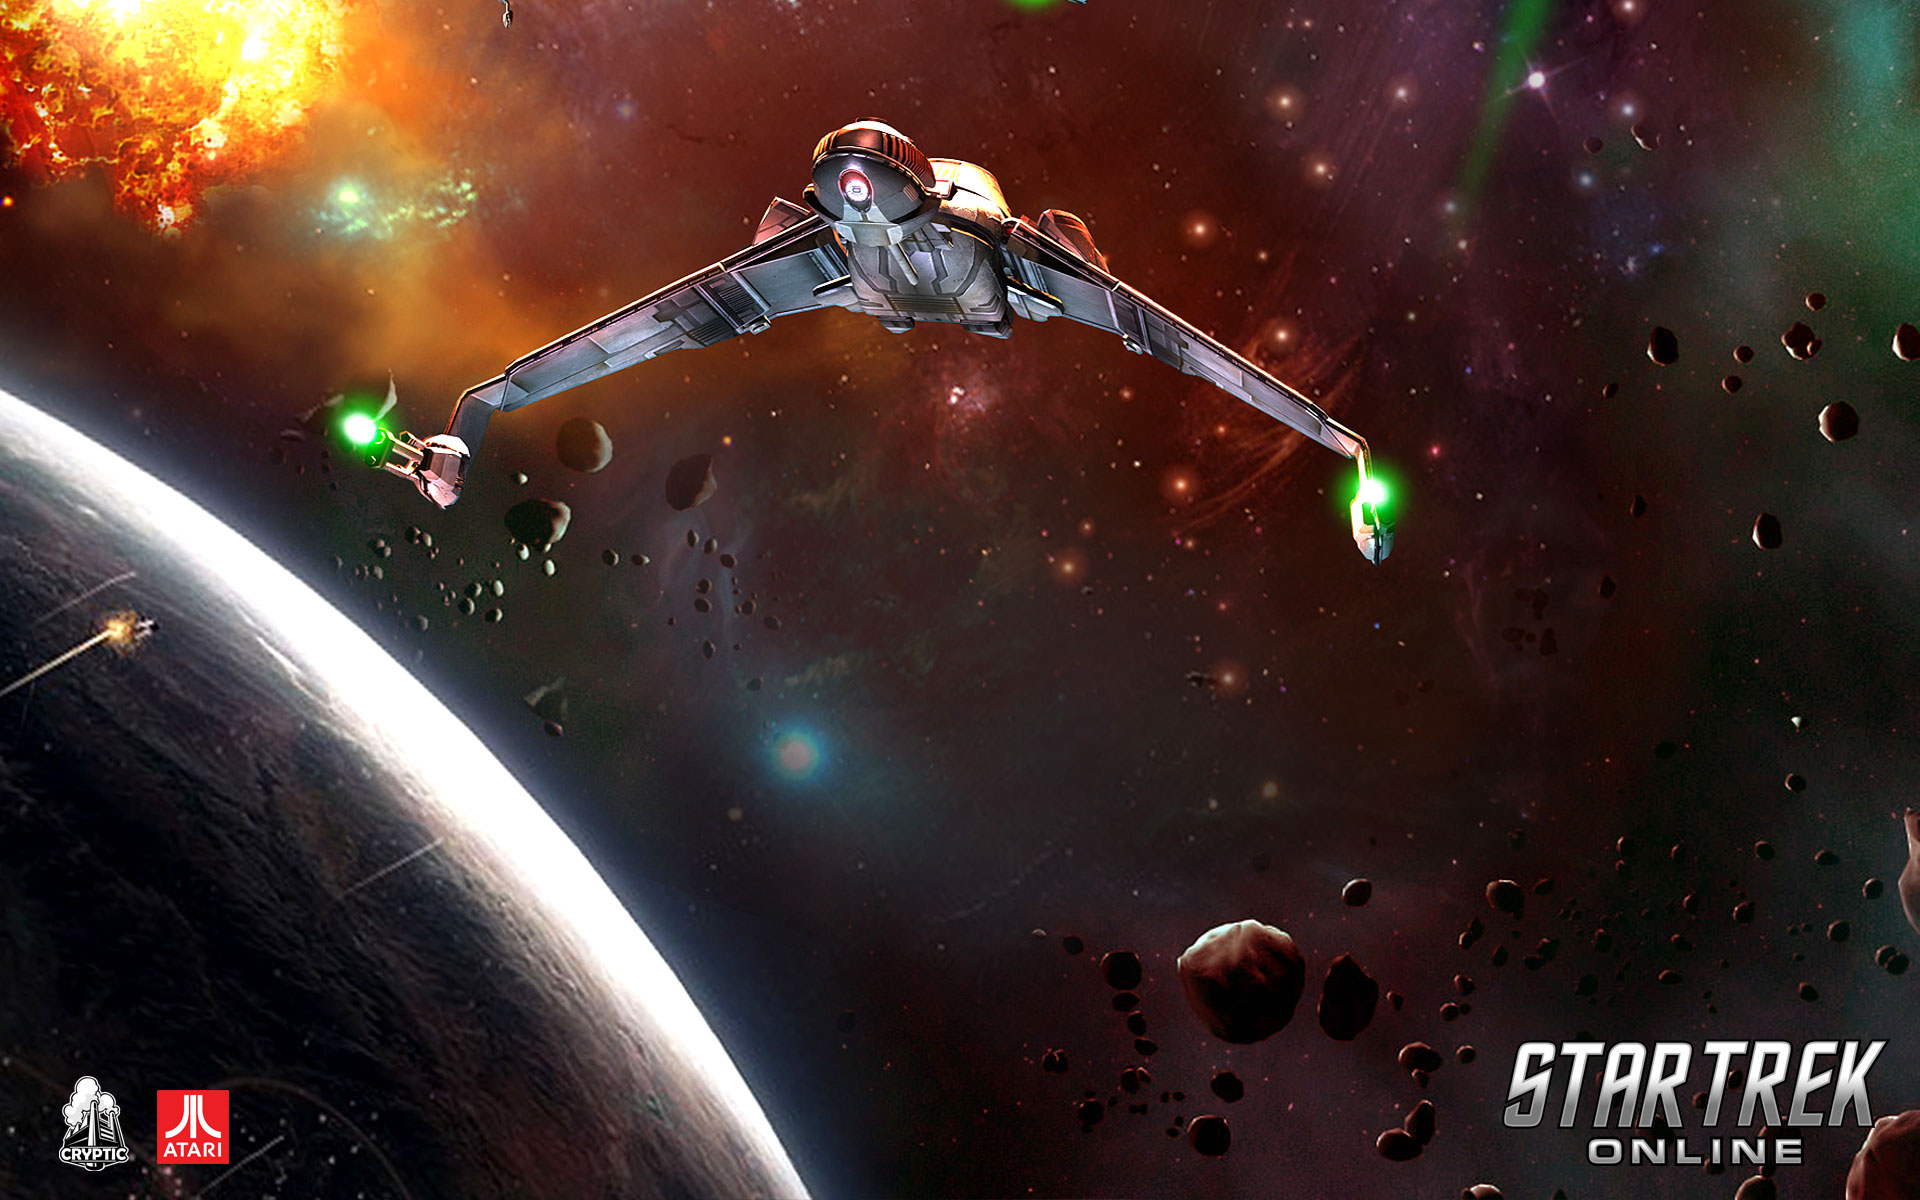 Star Trek Online Desktop Wallpapers for HD Widescreen and 1920x1200